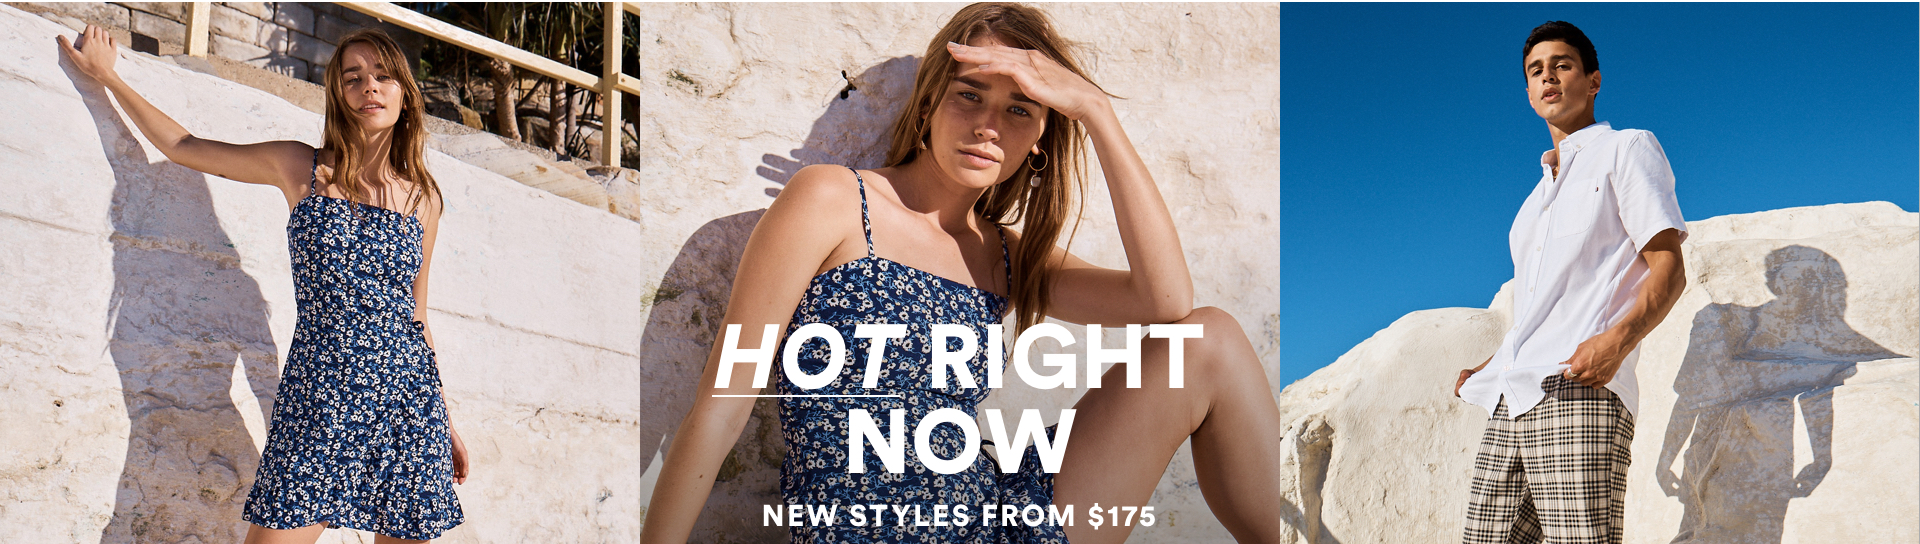 Hot Right Now. New Arrivals from $175.